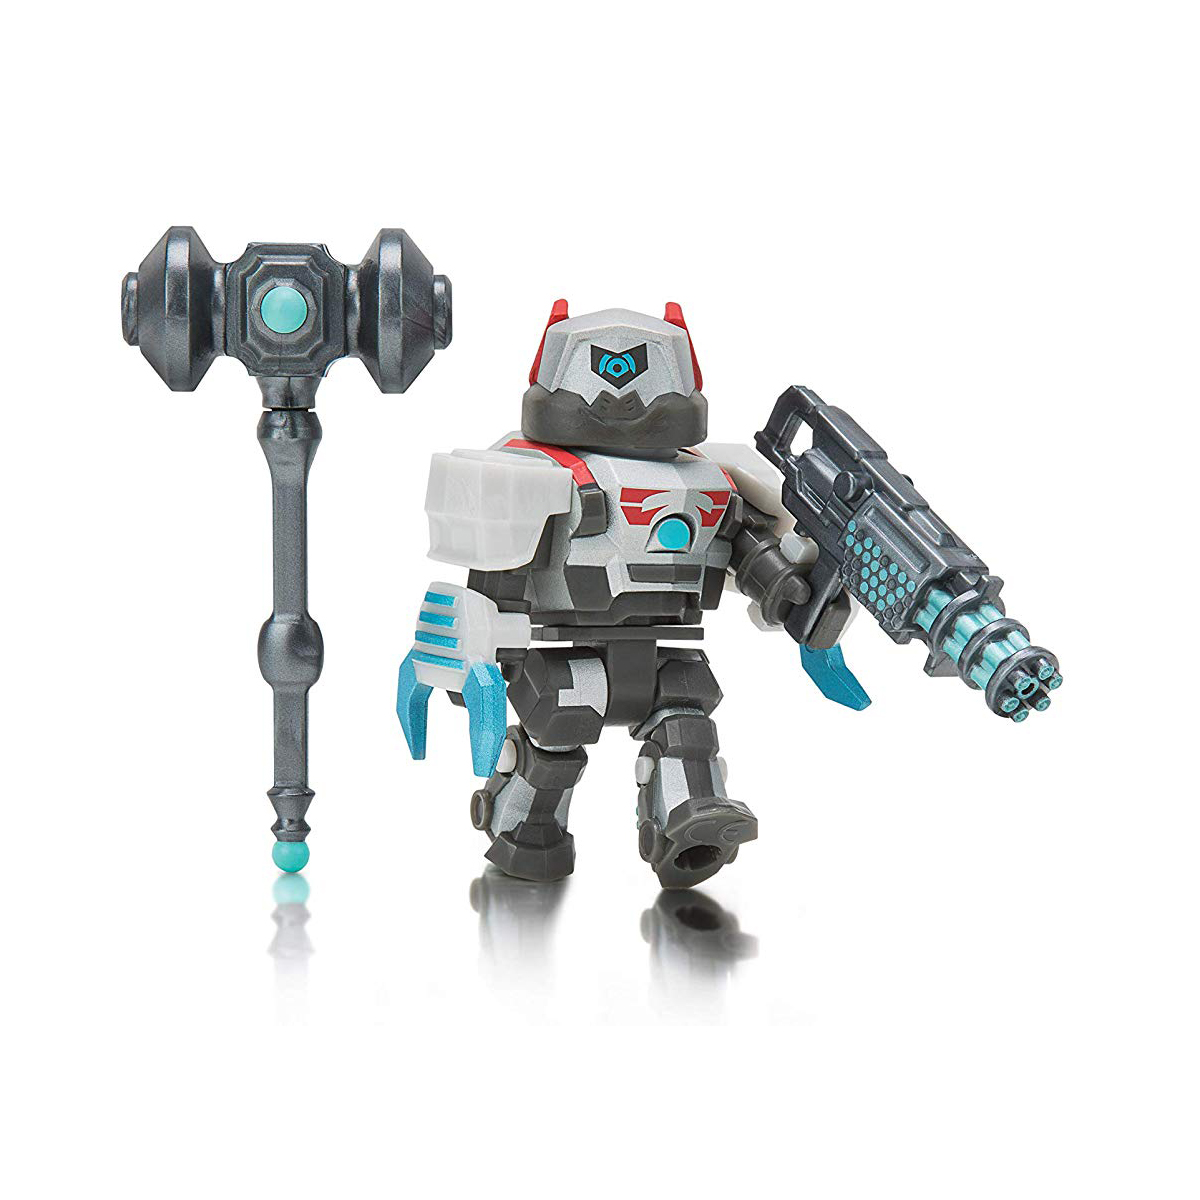 Figurina Roblox - Duel Droid 5000